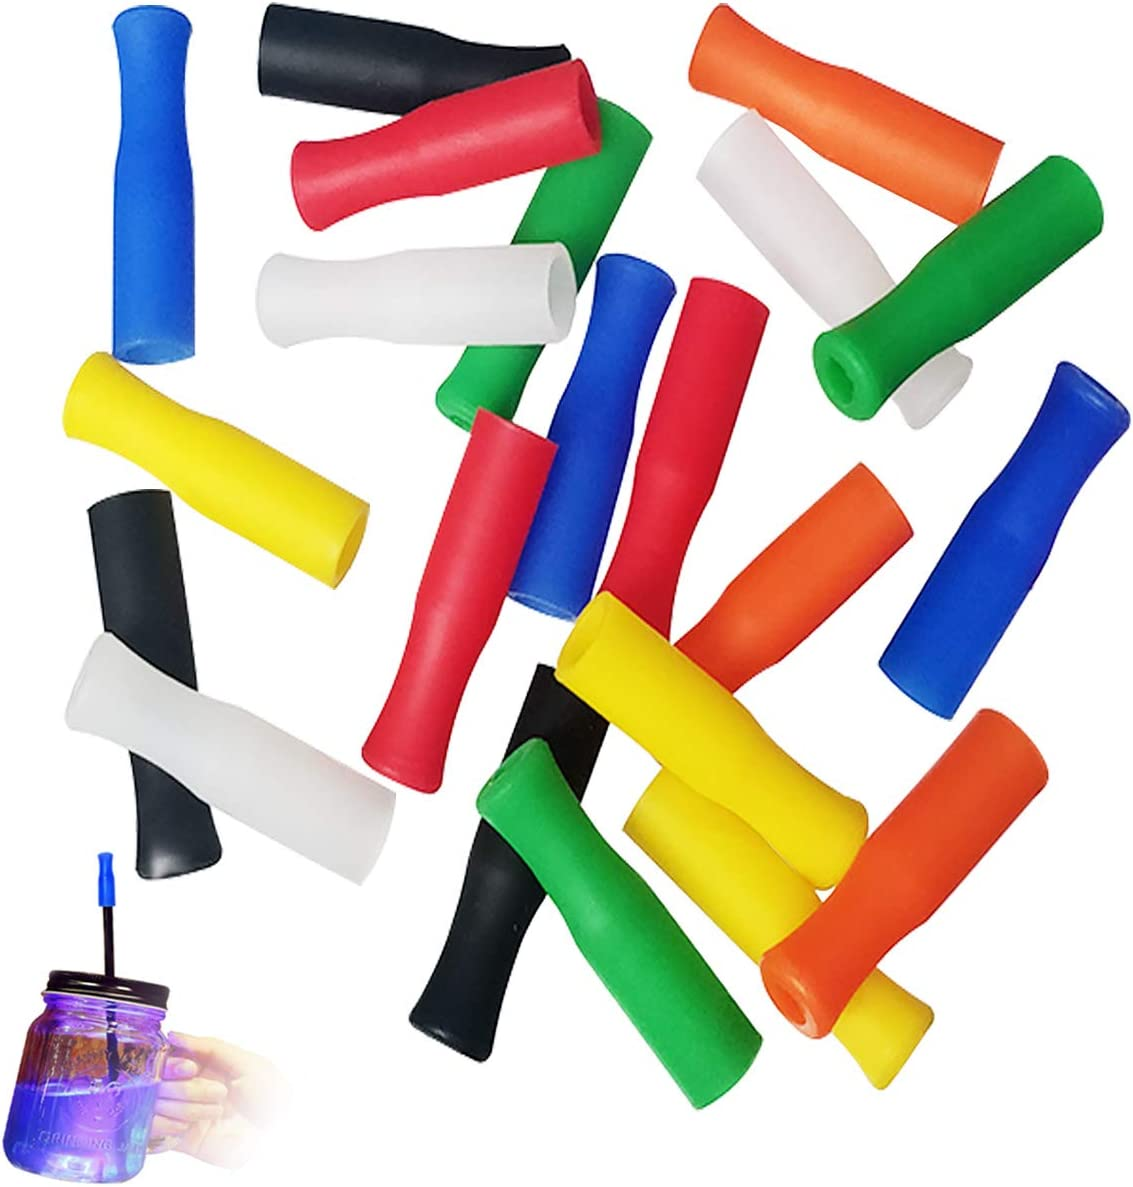 Silicone Straw Tips,21Pcs Reusable Straws Tips,Set of Multi-colored Anti-burn Food Grade Safety Straw Tips, for 6mm Wide Stainless Steel Straws,7 Colors